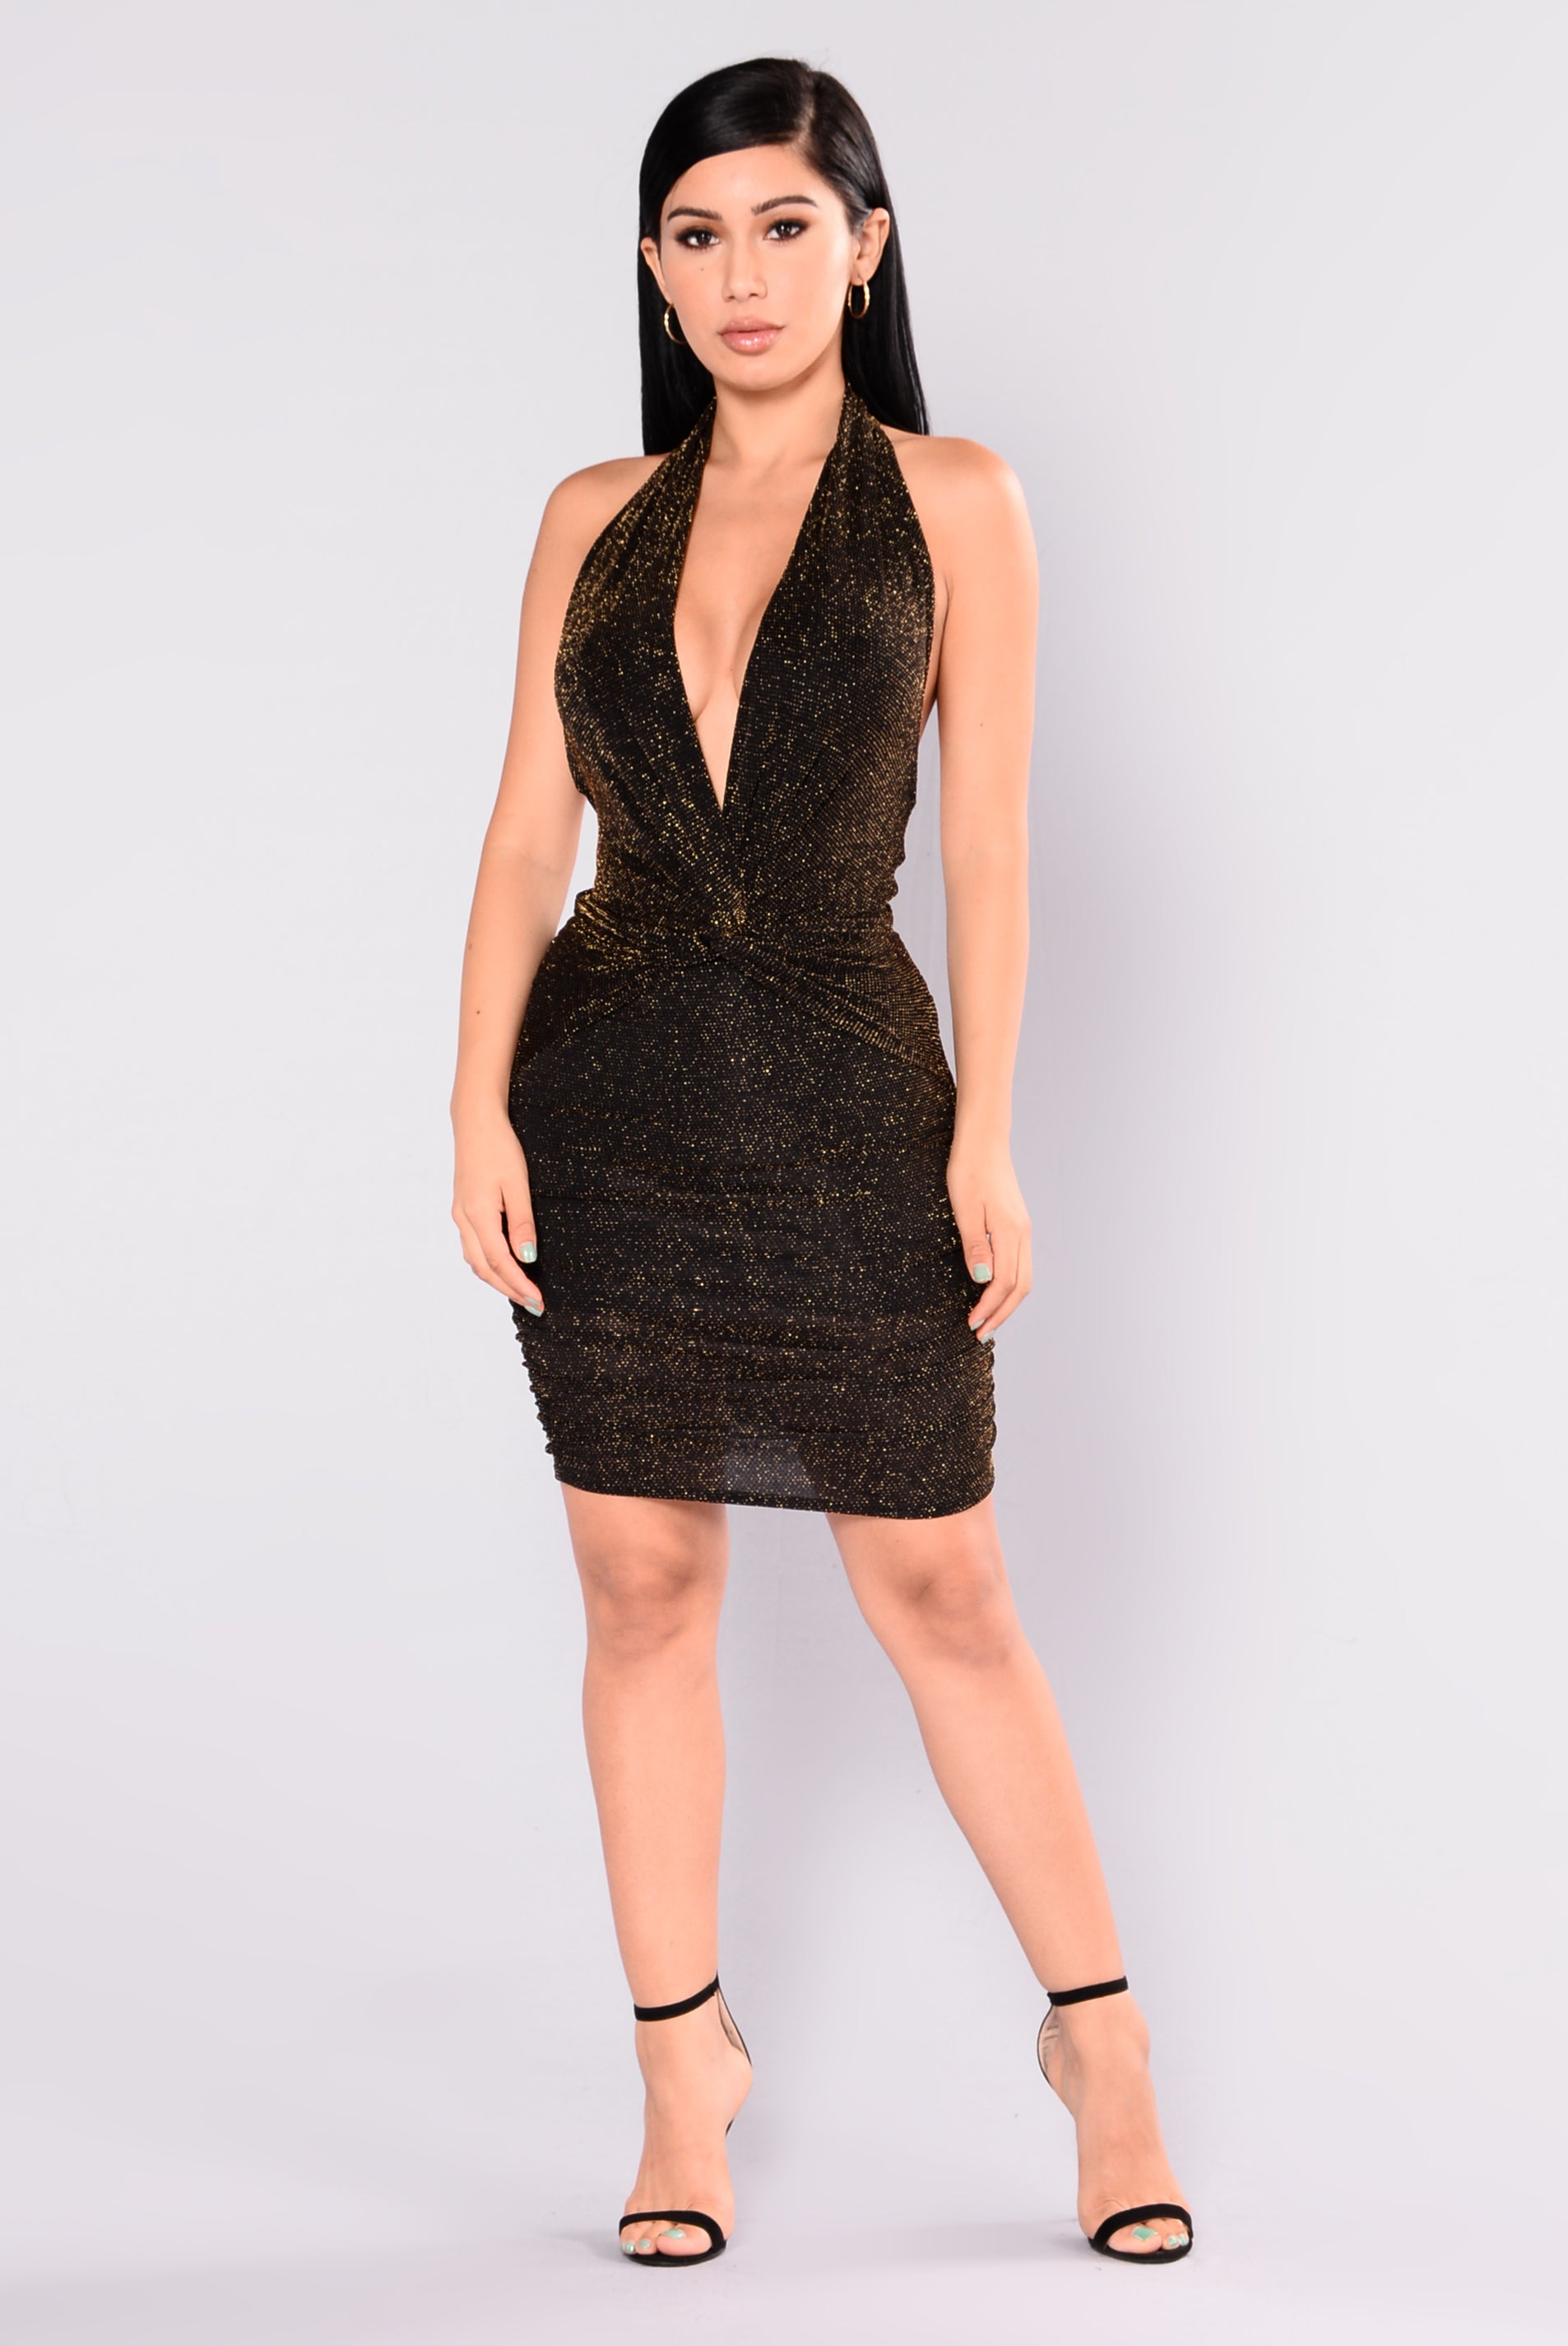 Black and Gold Sparkly Dress